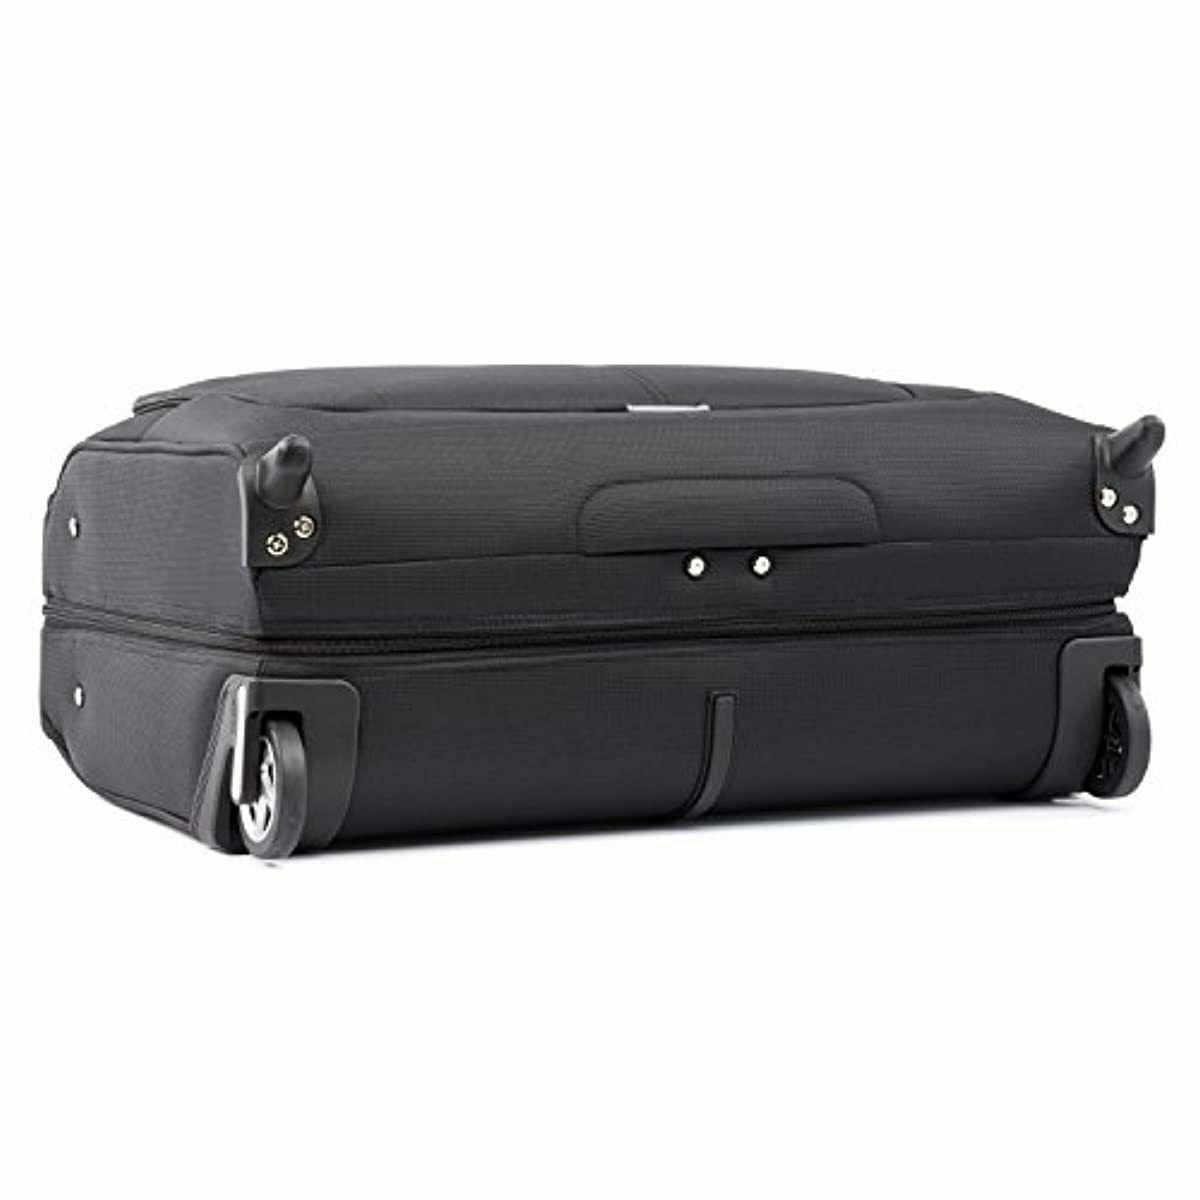 Travelpro Maxlite 5-Lightweight Carry-On Rolling 22-Inch